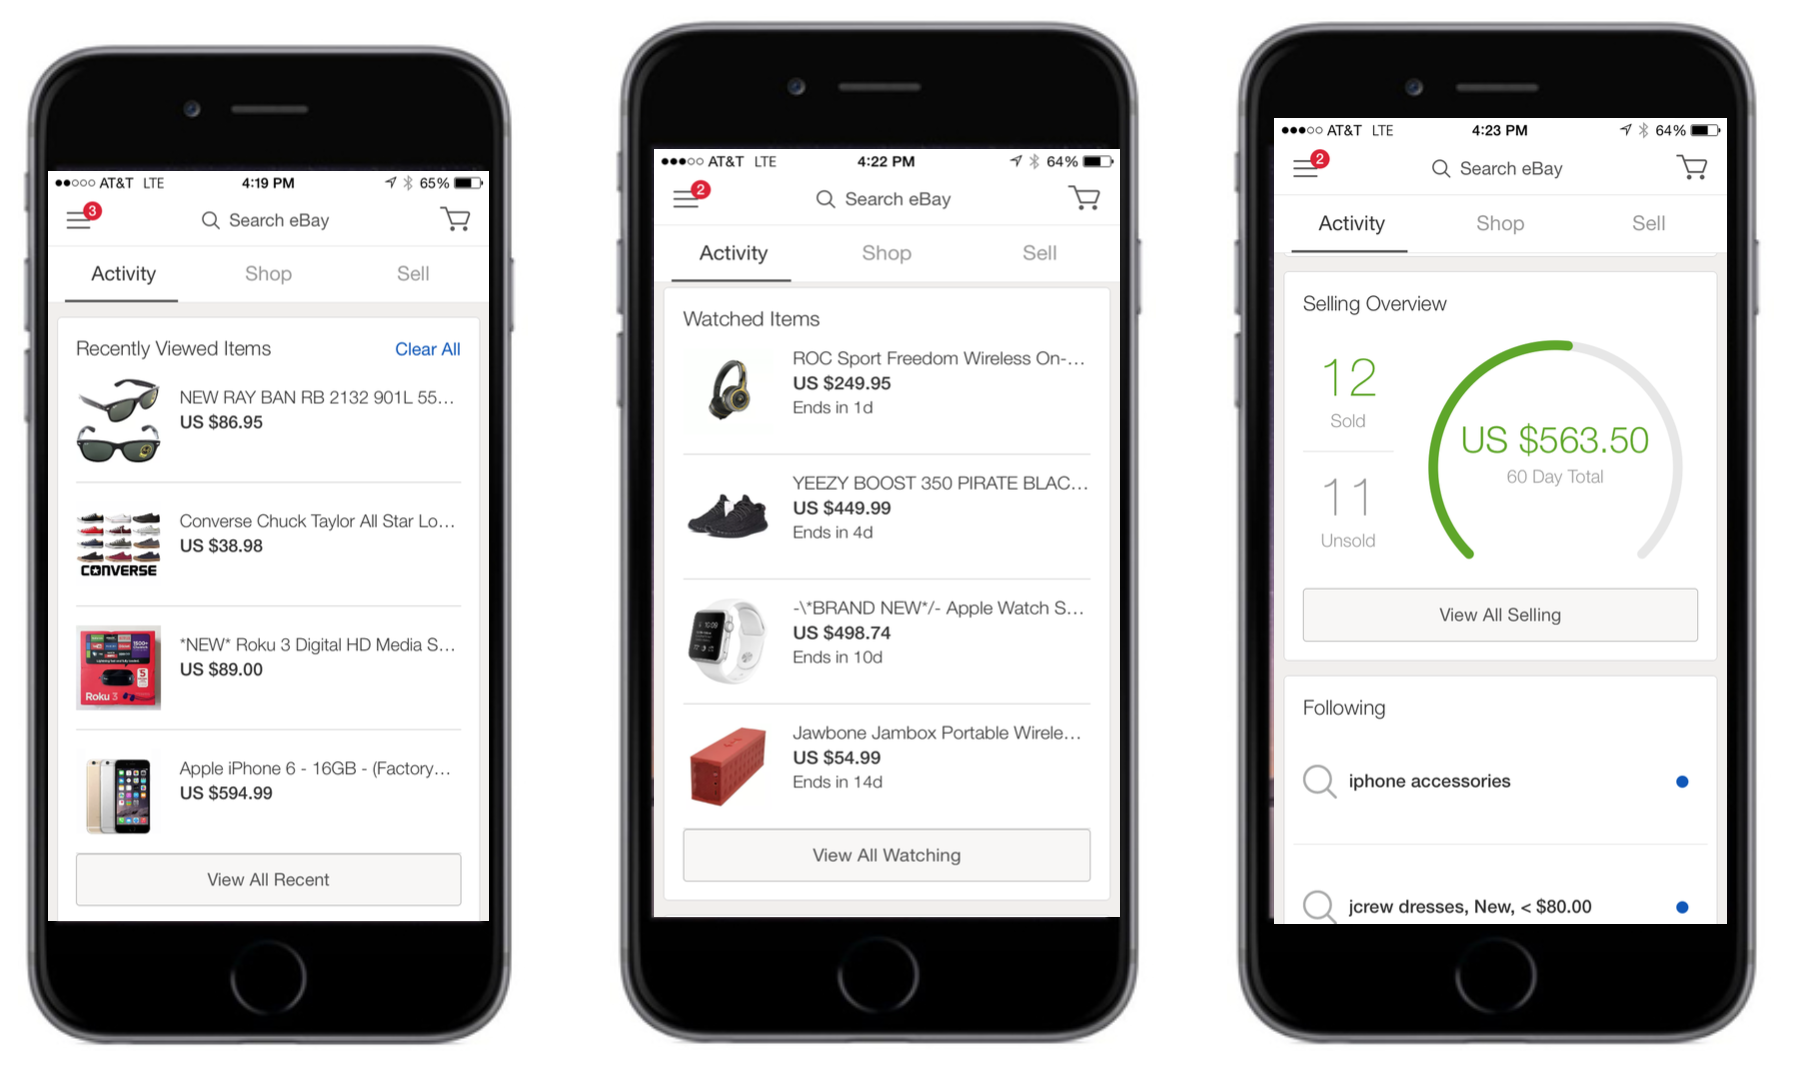 Ebay 4 0 Introduces A Unified Mobile Experience Plus Features From Shuttered Fashion Motor Valet Apps Techcrunch